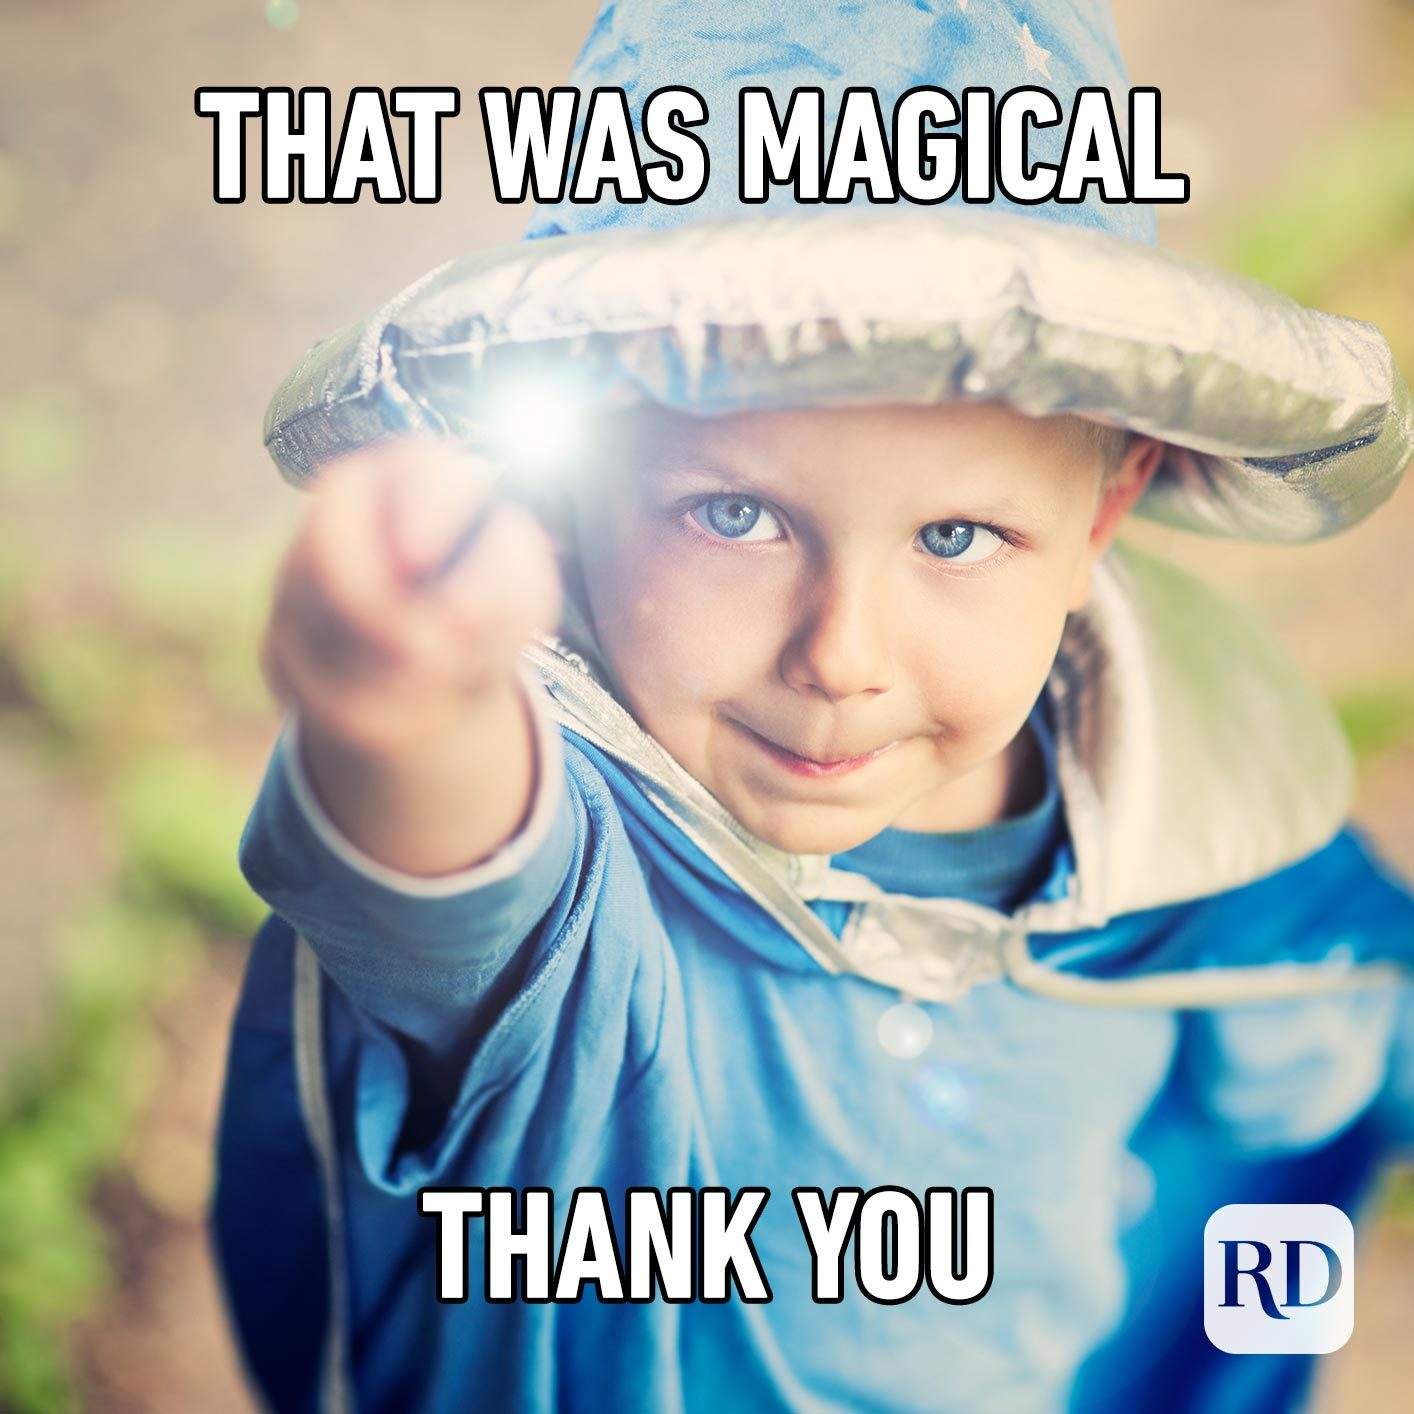 Child dressed as wizard. Meme text: That was magical Thank you